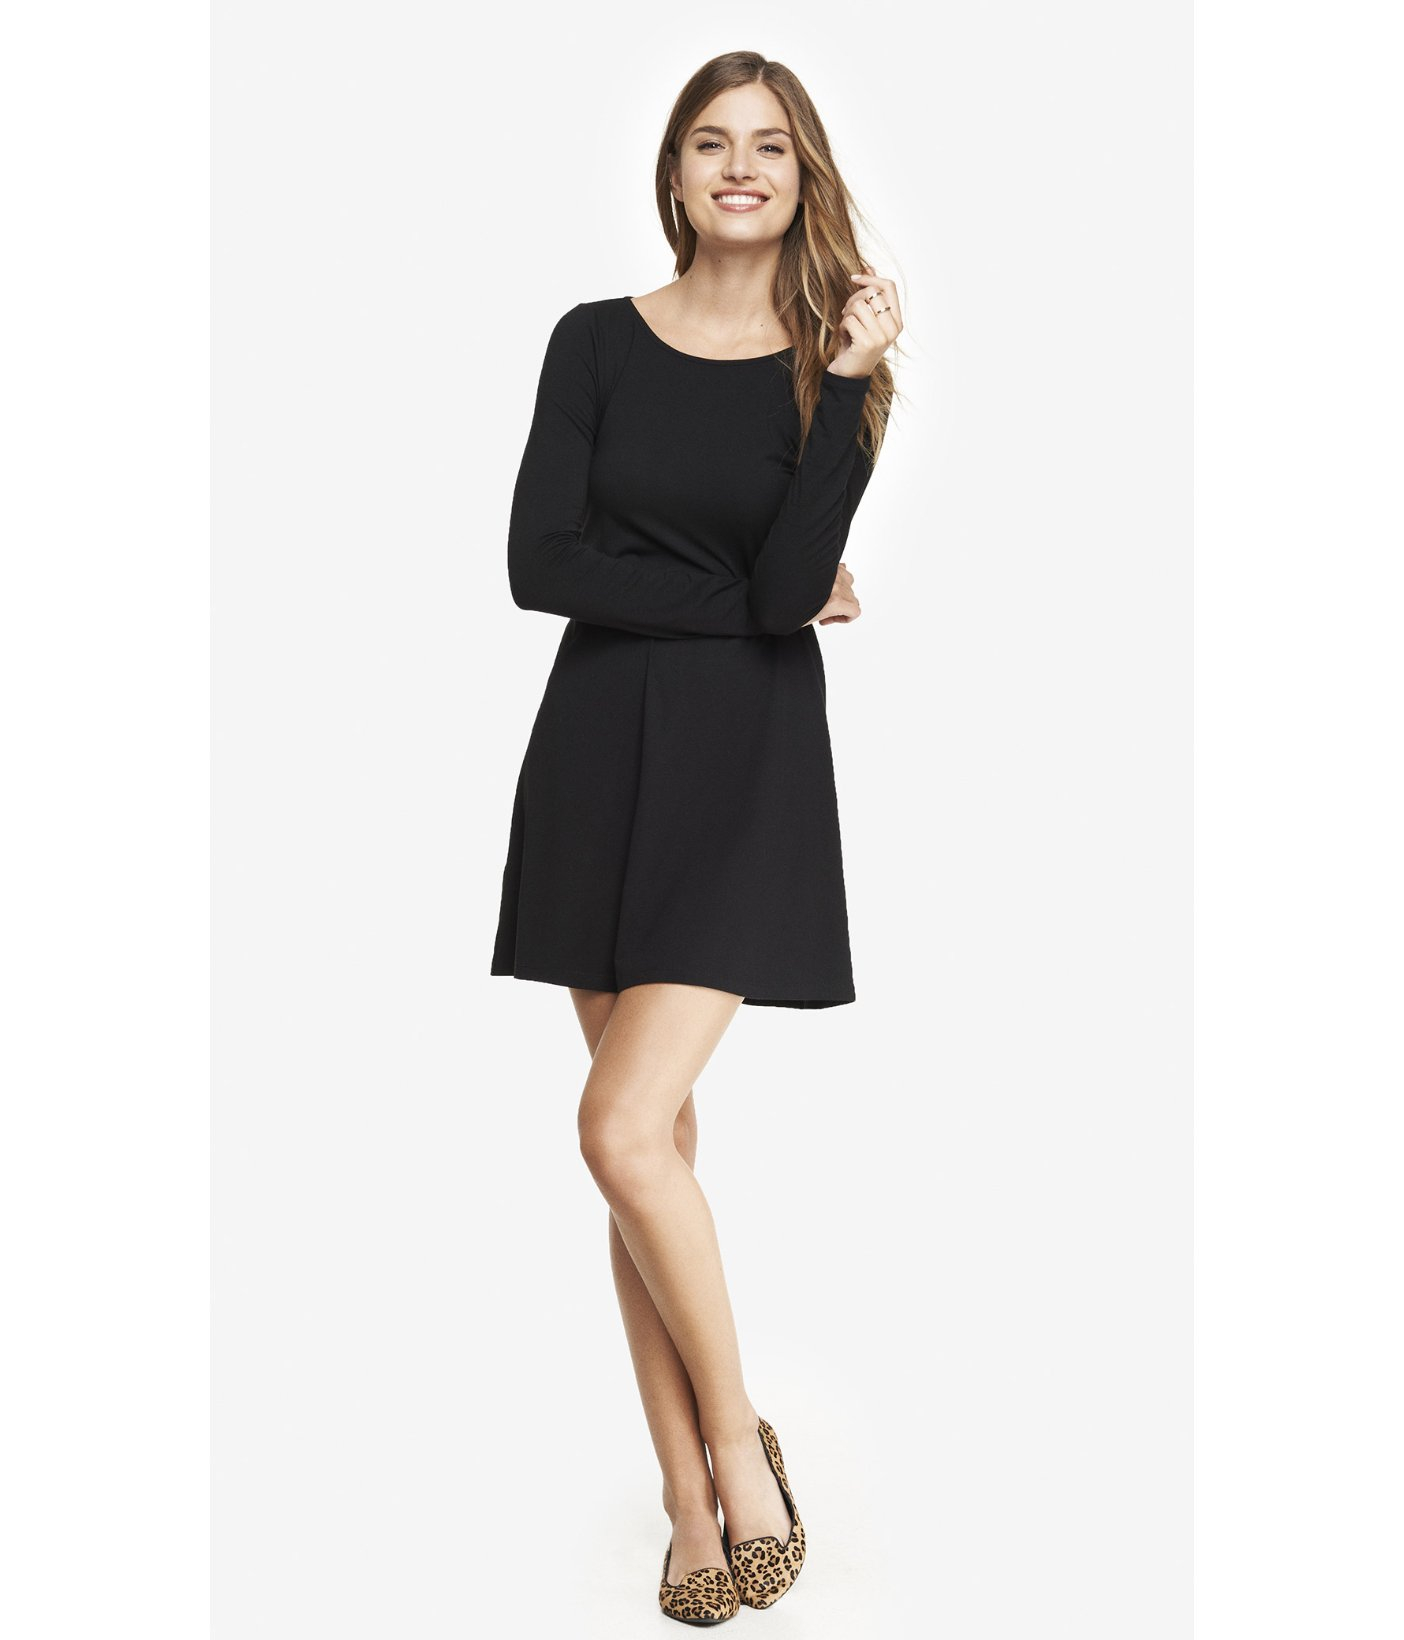 fbdb2bc30e0a8 Express Long Sleeve Zip Back Trapeze Dress - Black in Black - Lyst